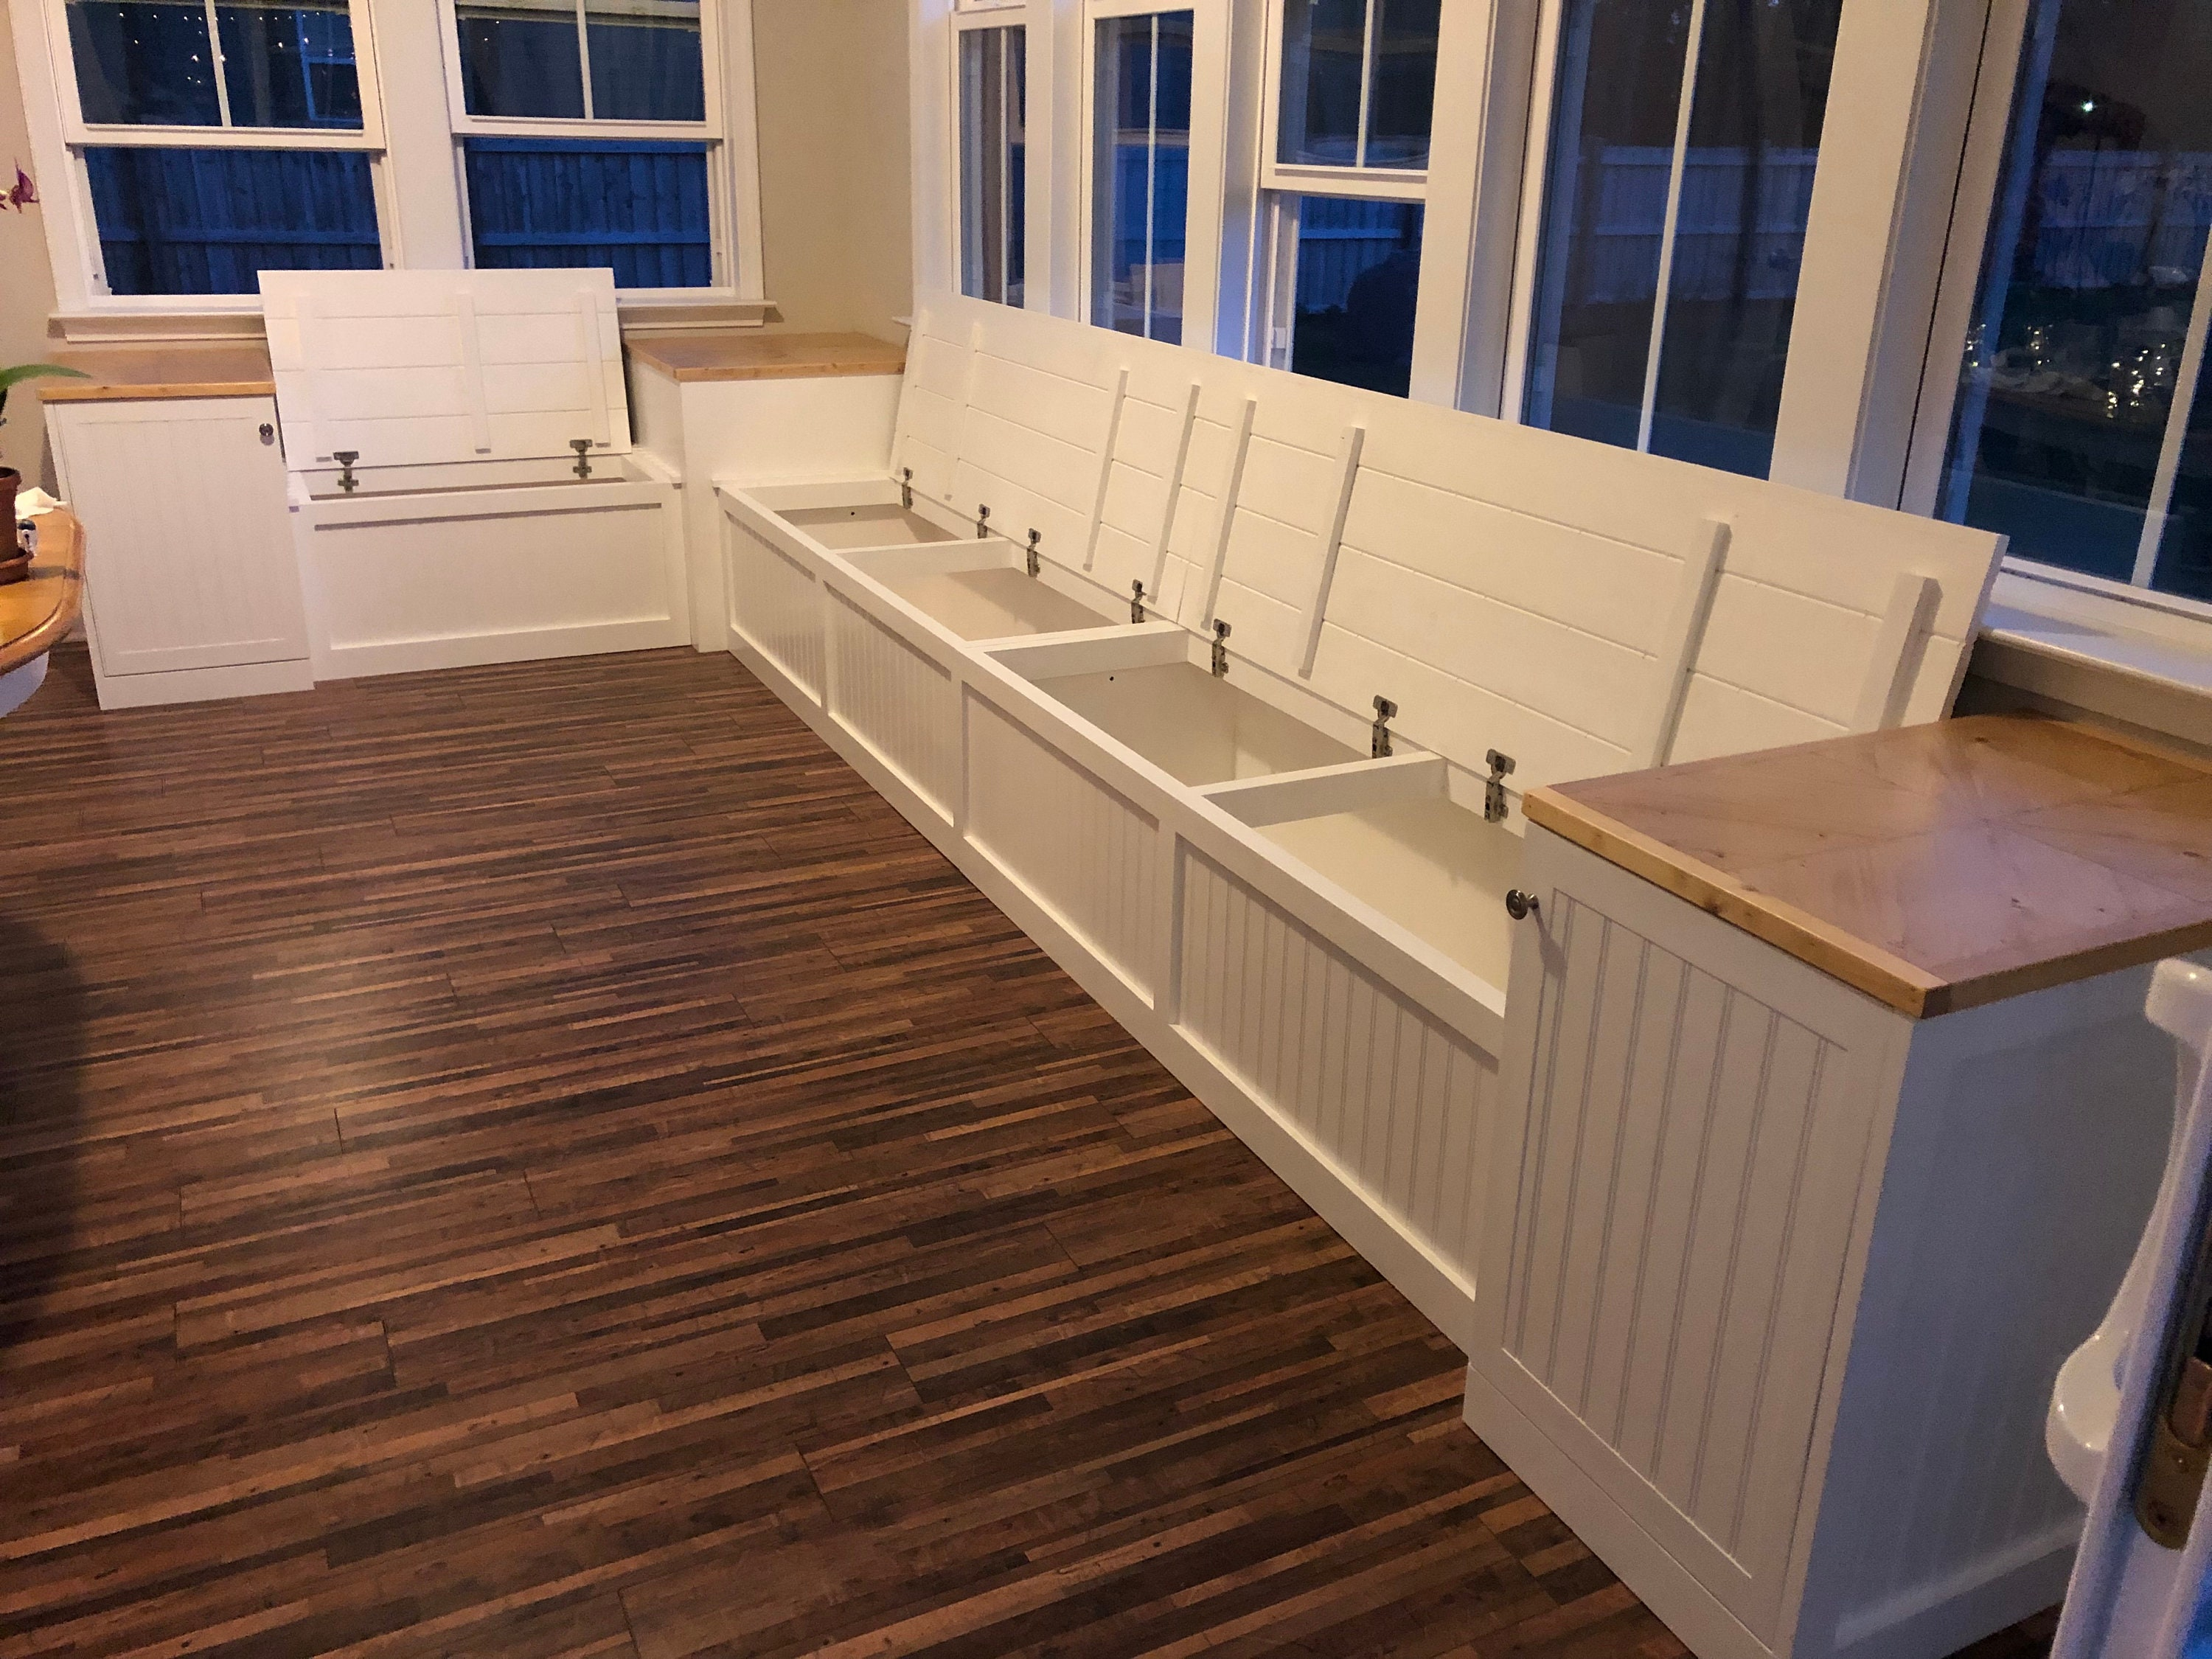 Picture of: Banquette Corner Bench Kitchen Seating L Shaped Bench Breakfast Nook Kitchen Nook Bench With End Tables Free Shipping